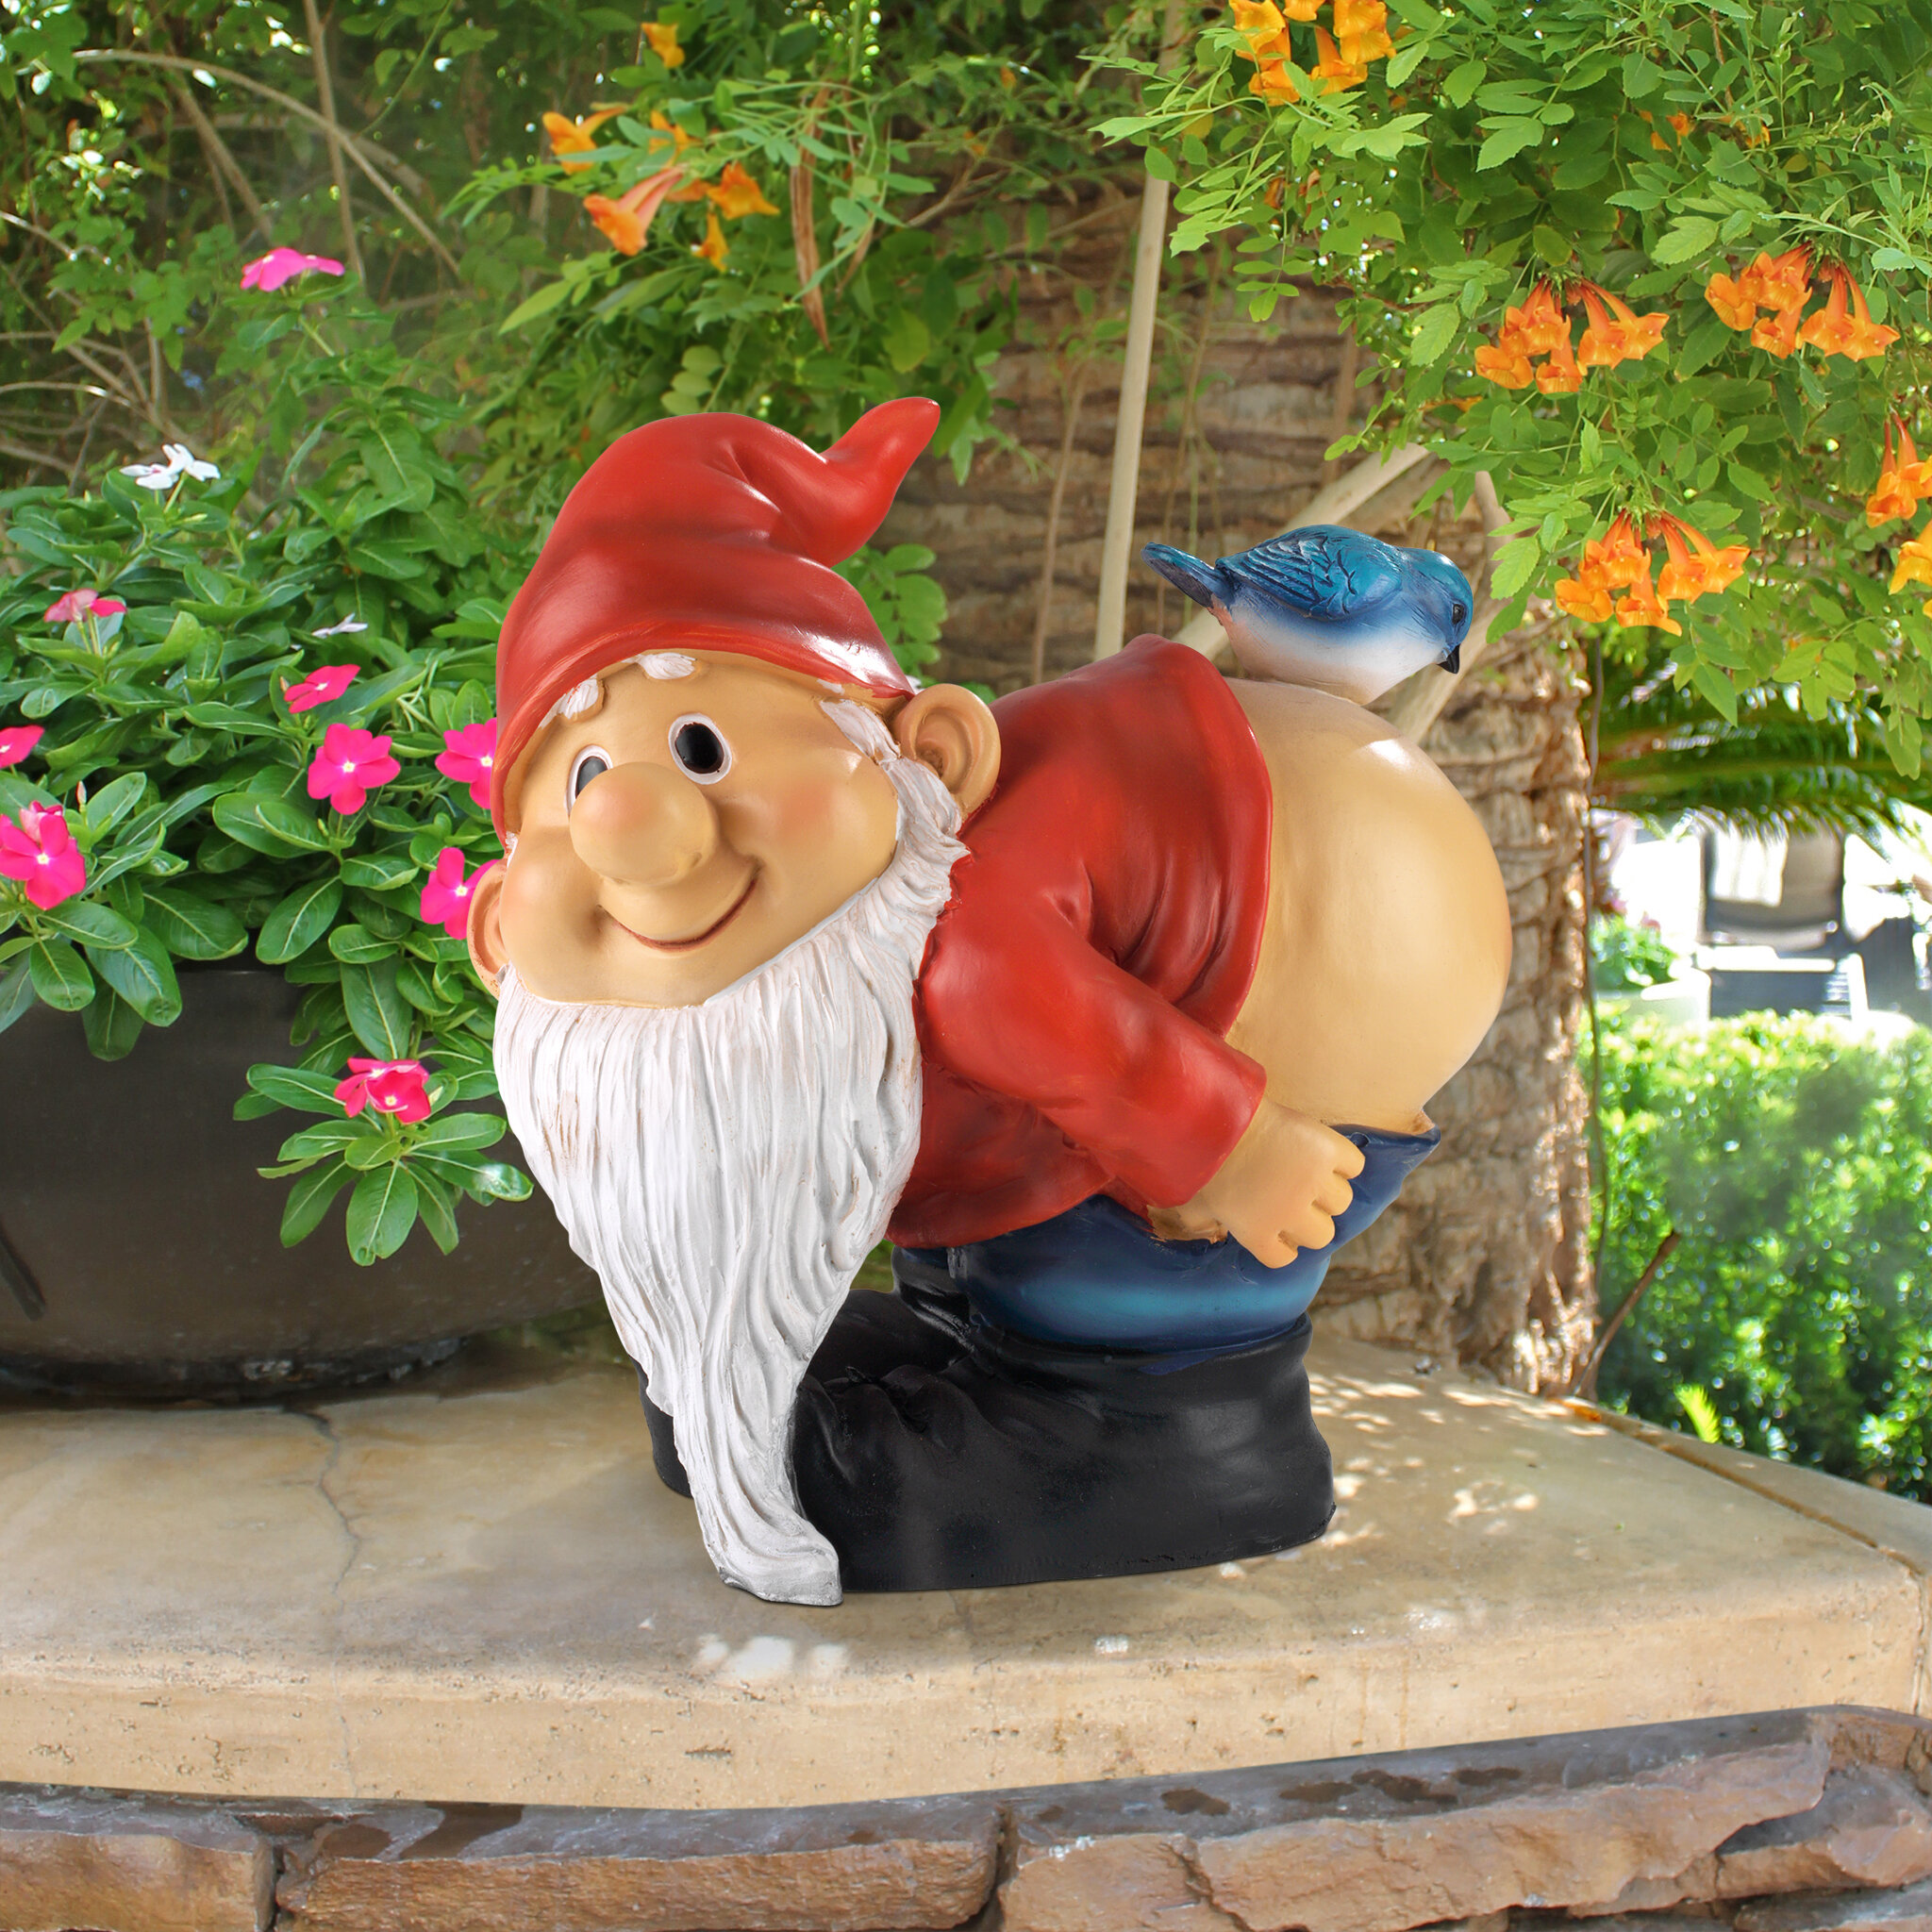 Design Toscano Loonie Moonie Bare Buttocks Garden Gnome Statue U0026 Reviews |  Wayfair